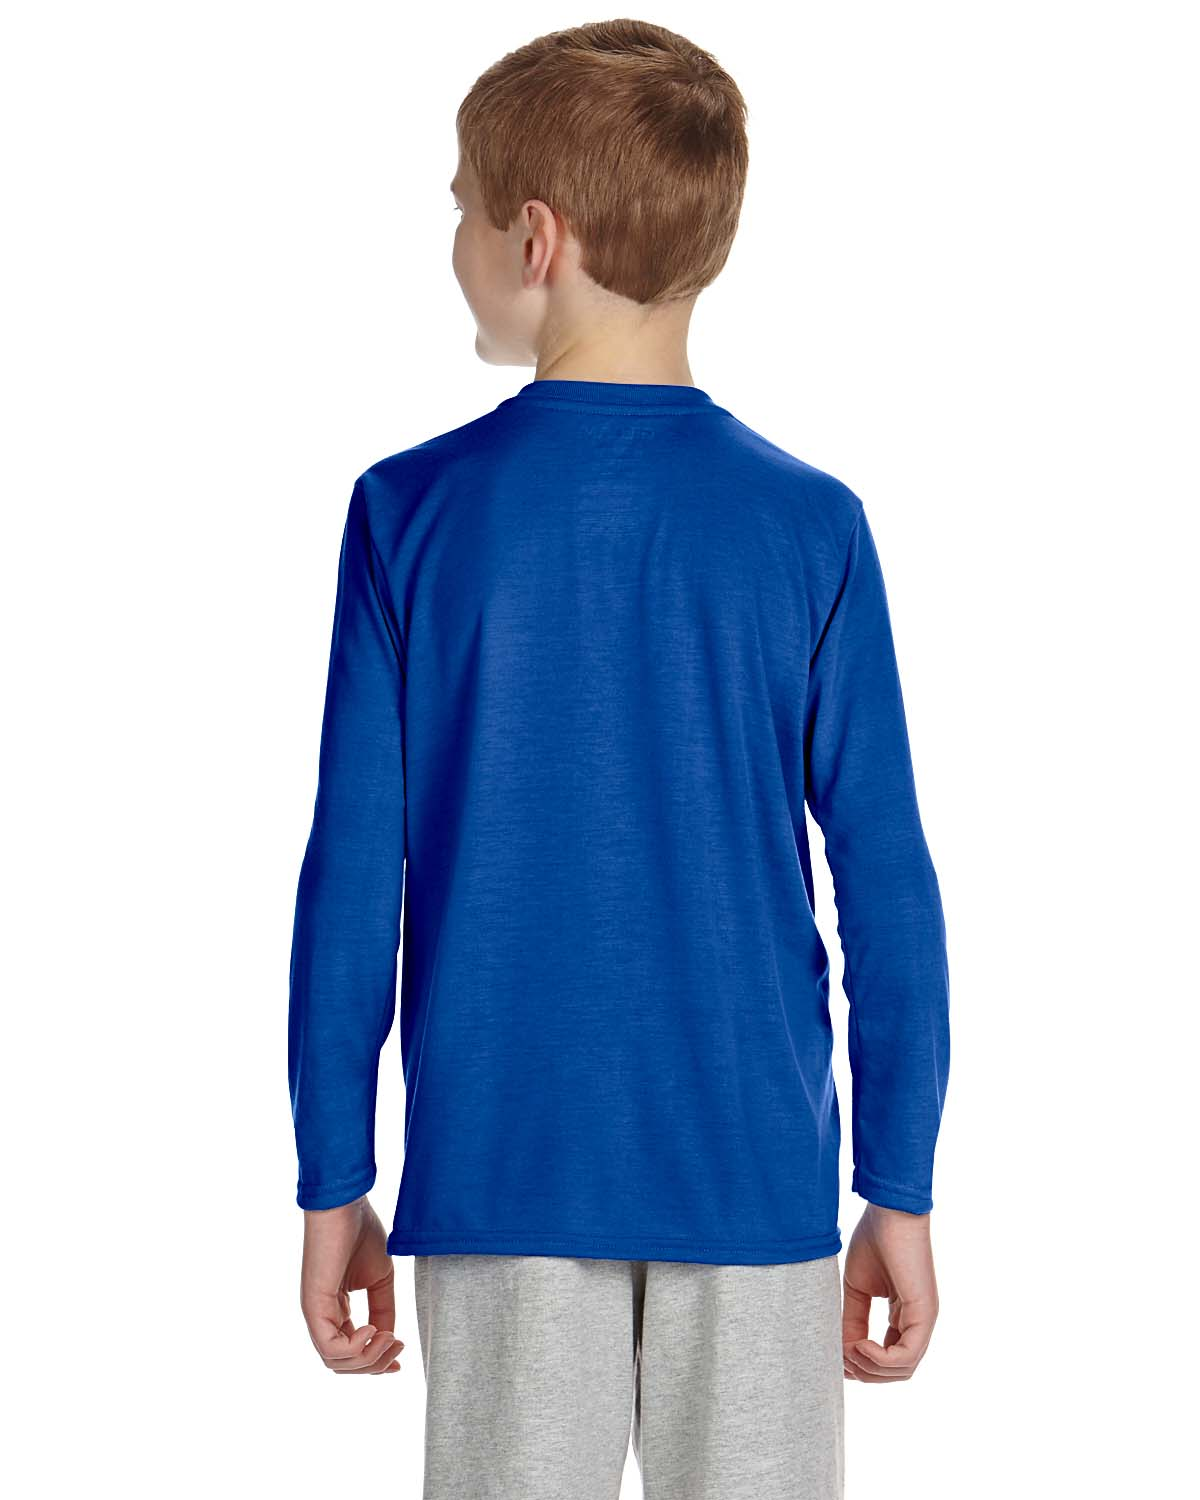 New gildan performance youth dri fit long sleeve t shirt for Custom dri fit t shirts